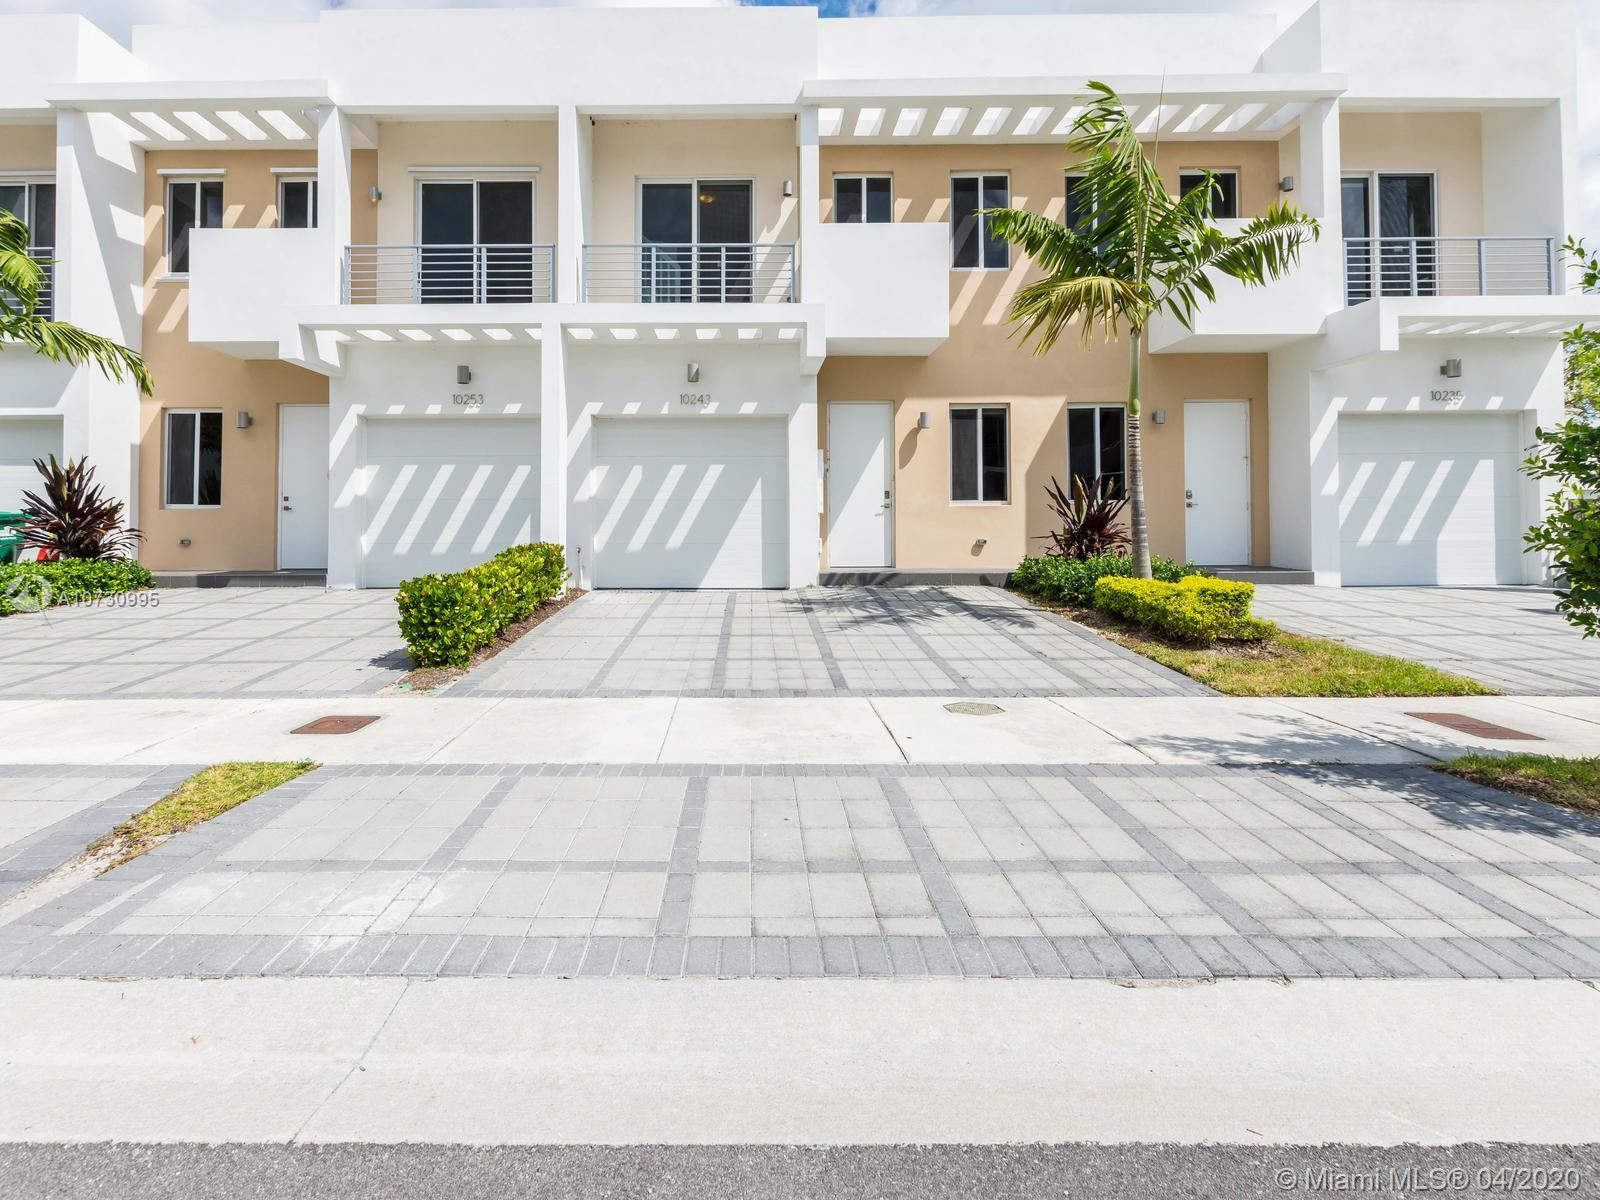 10243 NW 72nd St, Miami, Florida 33178, 3 Bedrooms Bedrooms, 7 Rooms Rooms,3 BathroomsBathrooms,Residential,For Sale,10243 NW 72nd St,A10730995